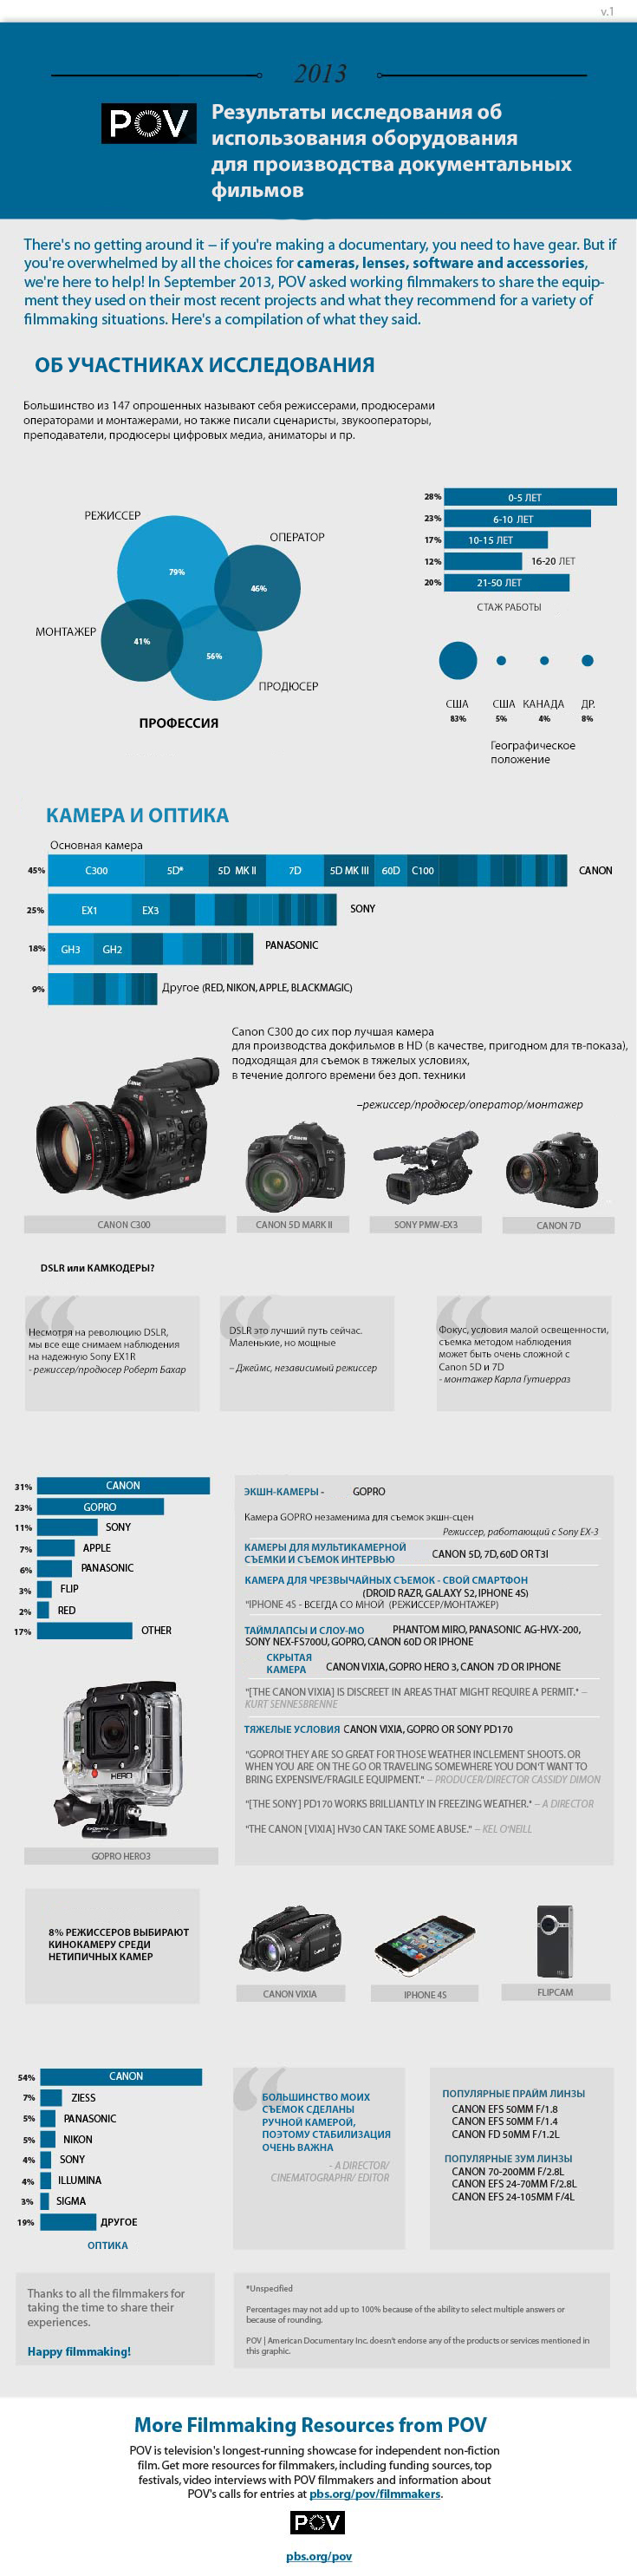 2013-Doc-Equip-Survey-Graphic-1 copy